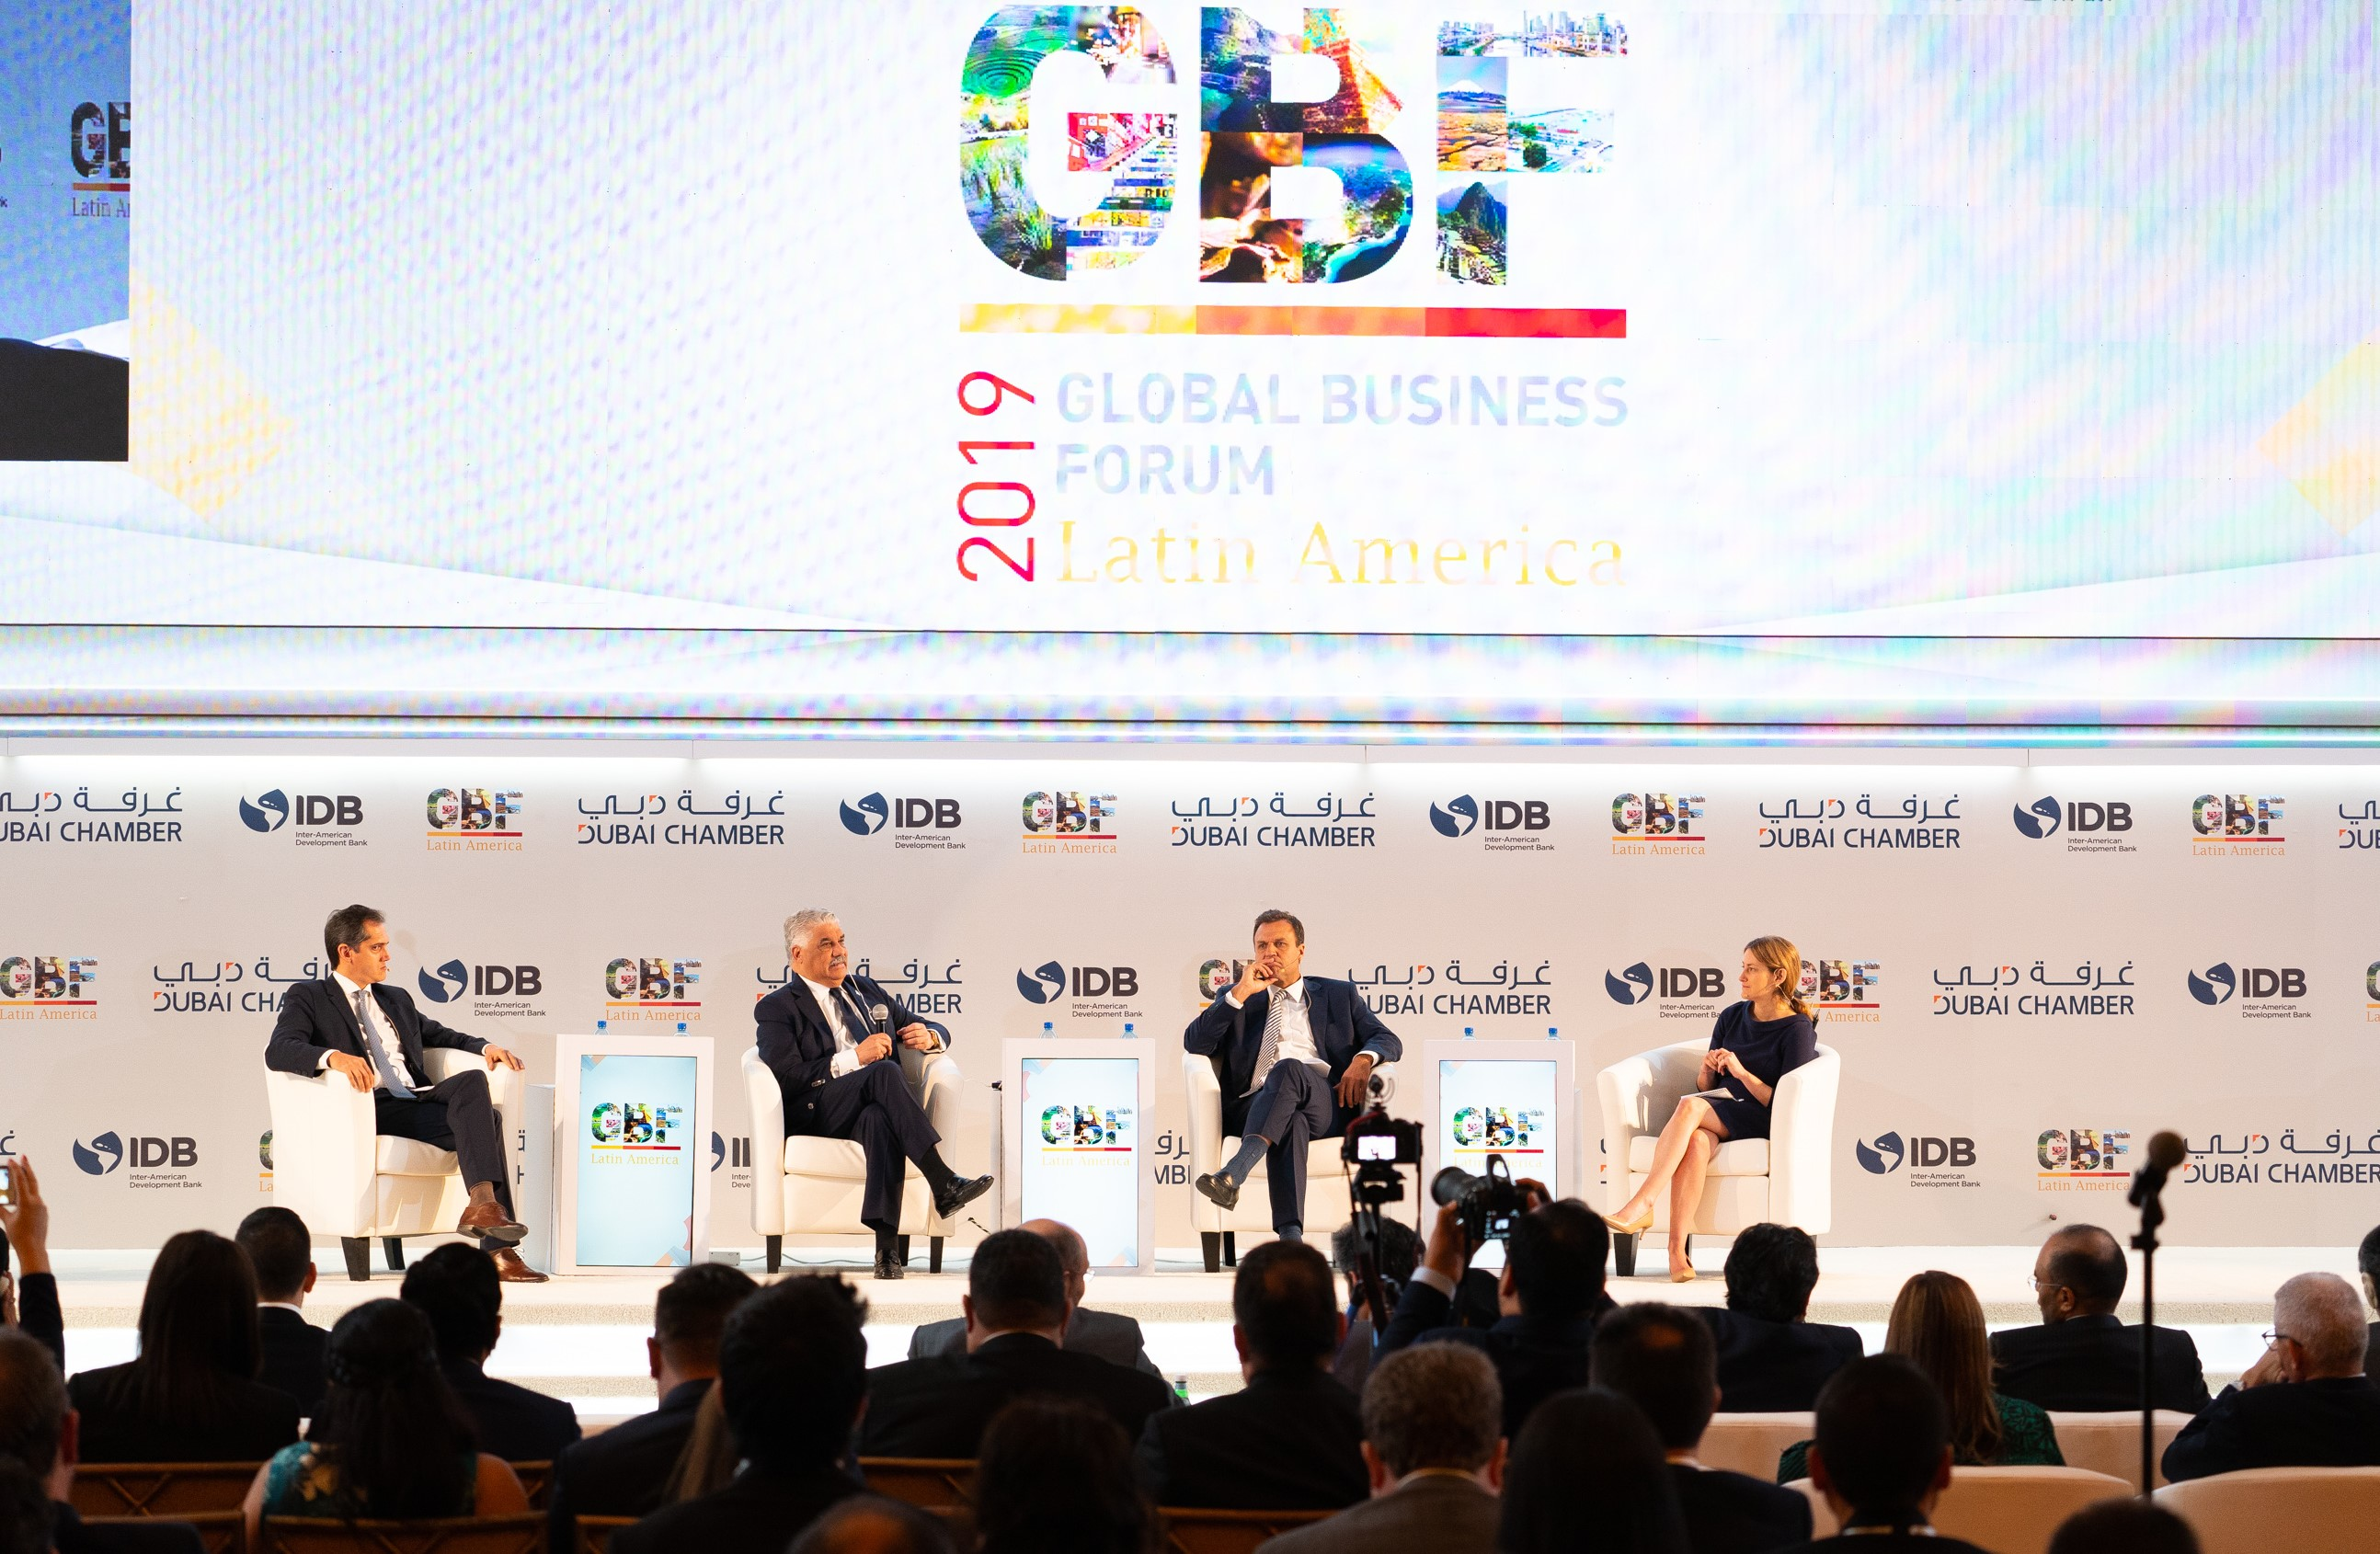 gbf latin america – panama 2019 calls to capitalise on new business opportunities in gcc  2